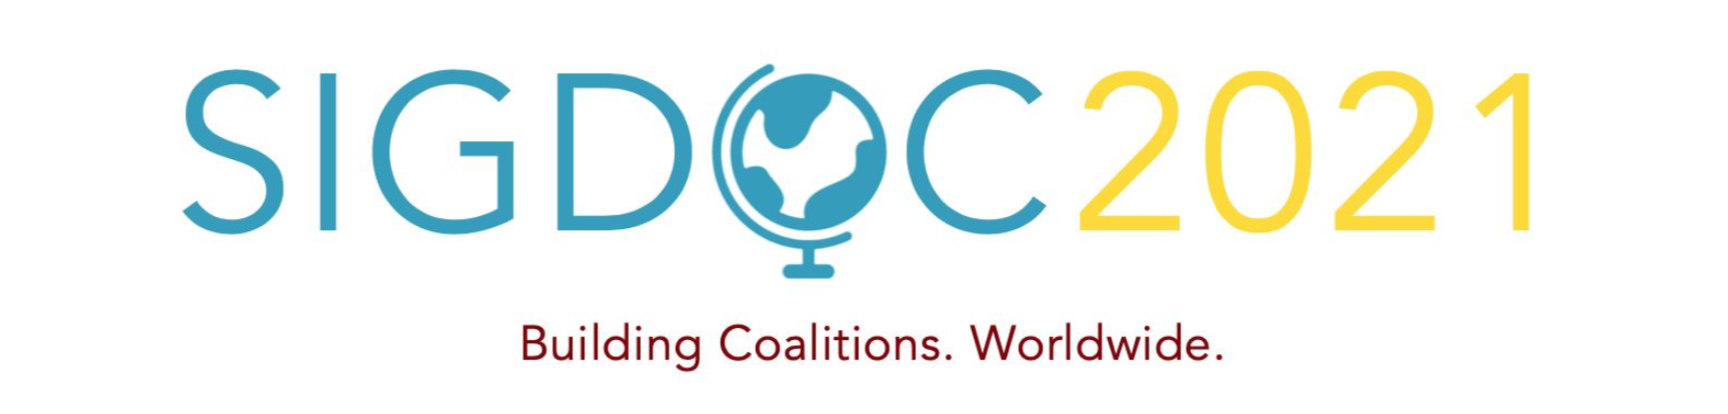 logo for SIGDOC 2021 with the O in the word SIGDOC replaced with the icon of a globe. Text under the logo reads Building Coalitions. Worldwide.